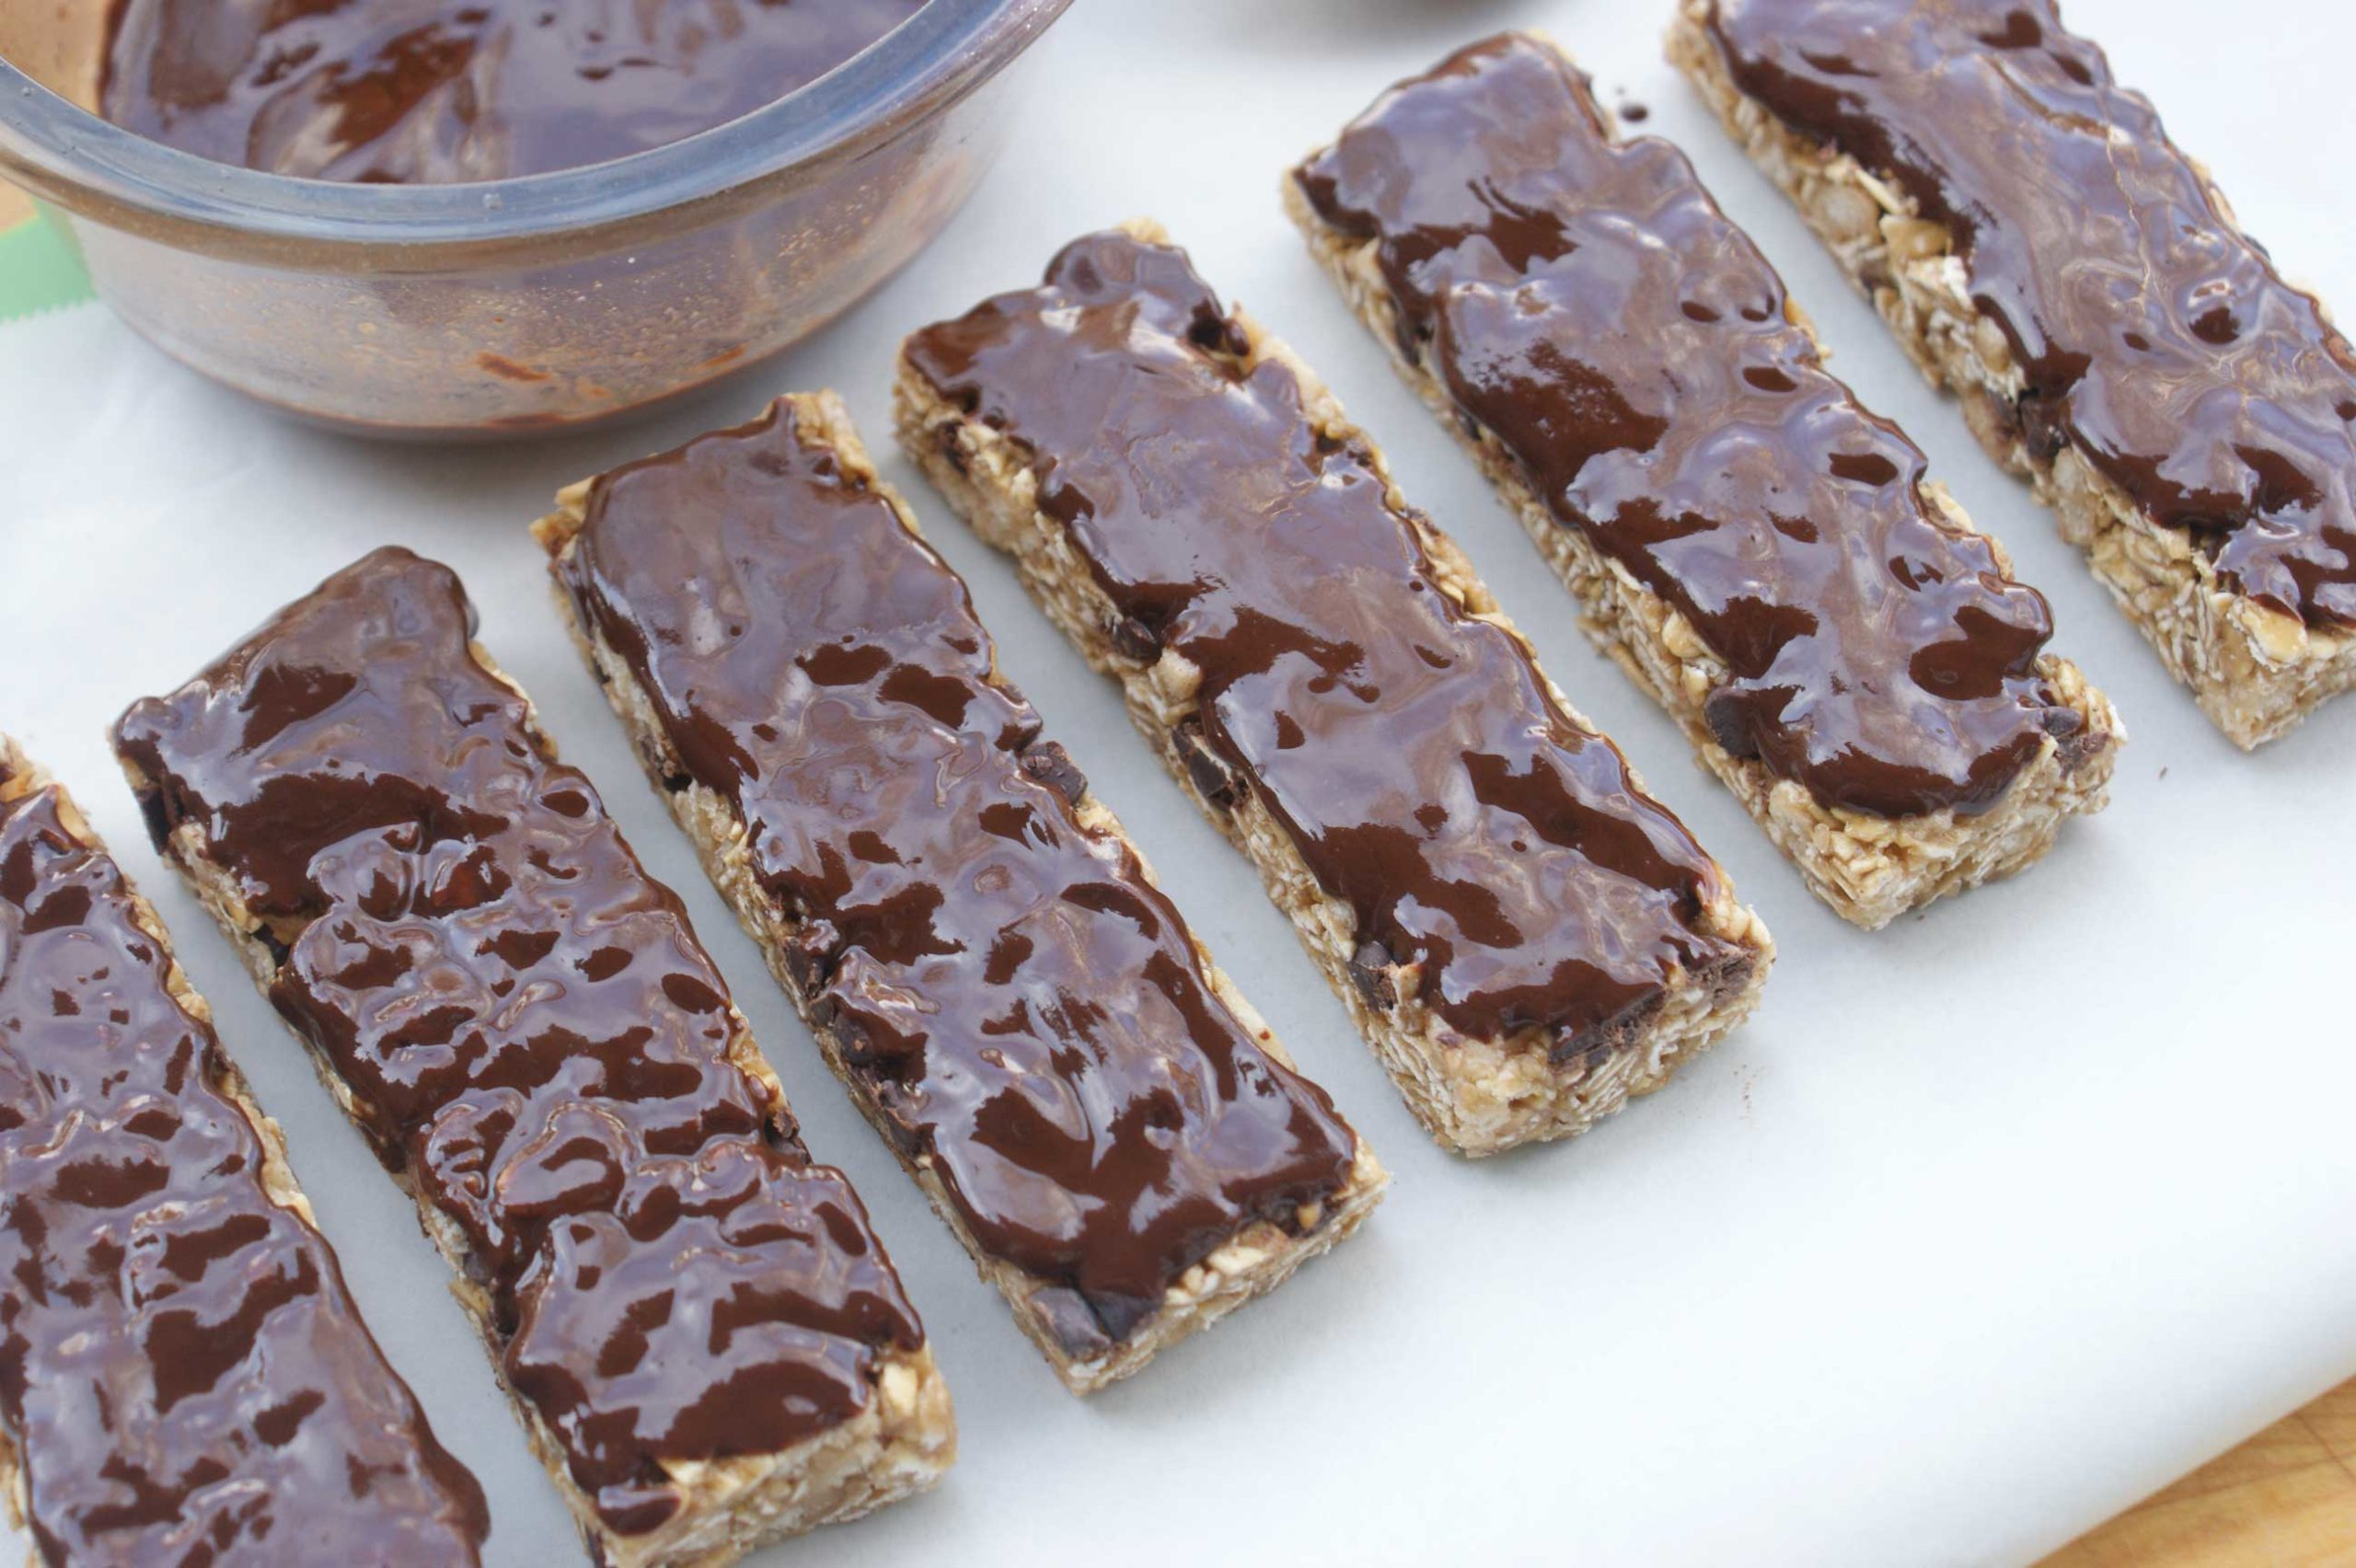 Chocolate-Topped Garbanzo Bean Bars